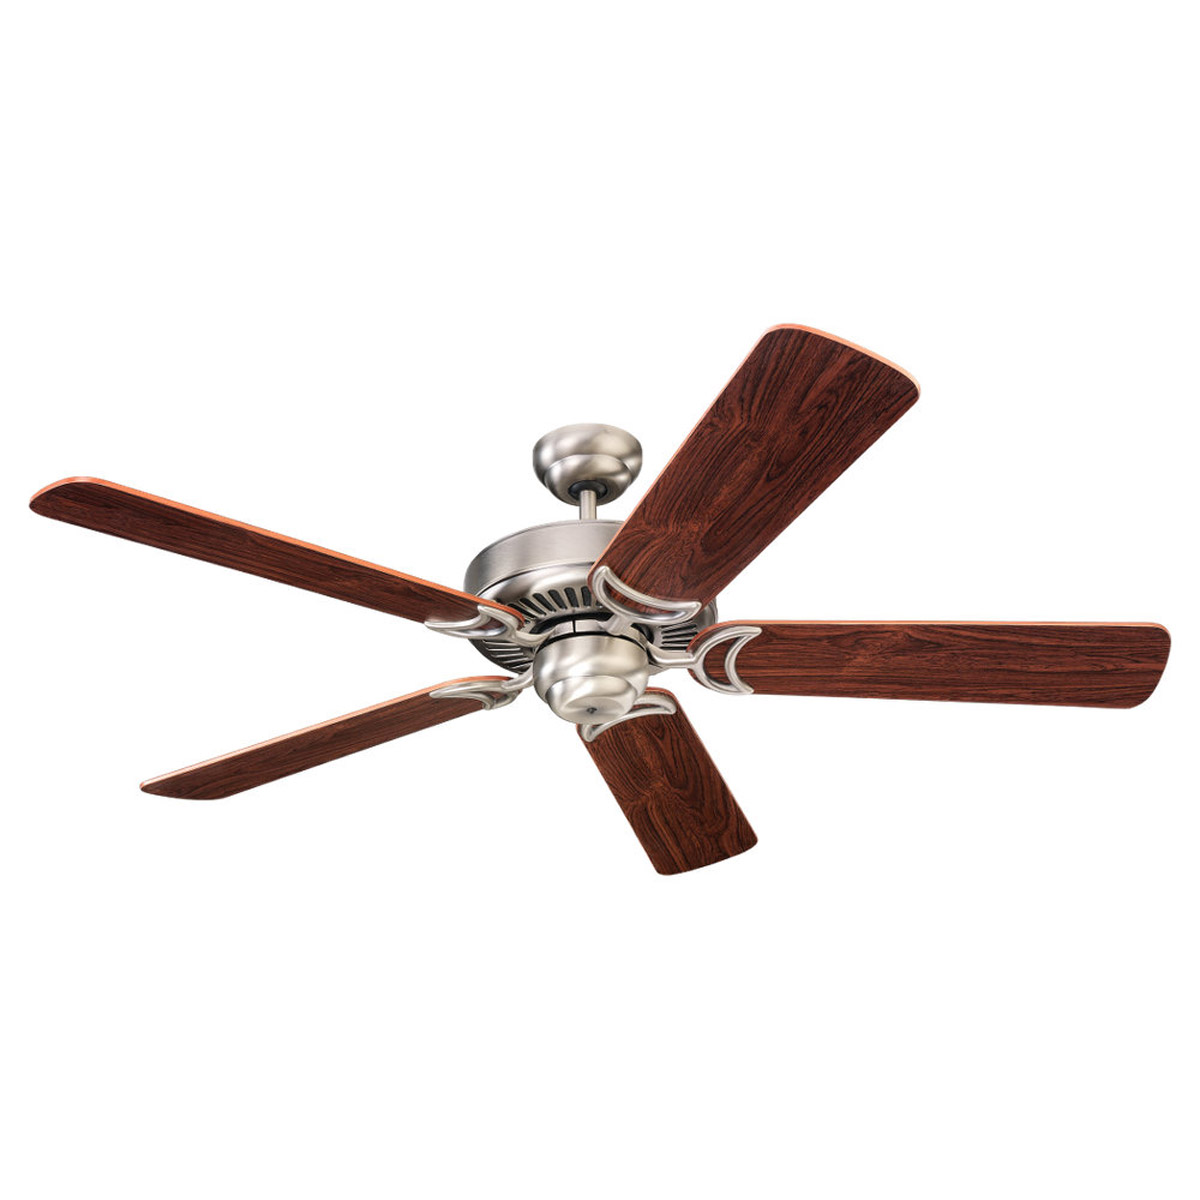 Sea Gull Lighting 52in Celebrity Deluxe Ceiling Fan in Antique Brushed Nickel 1535-965 photo